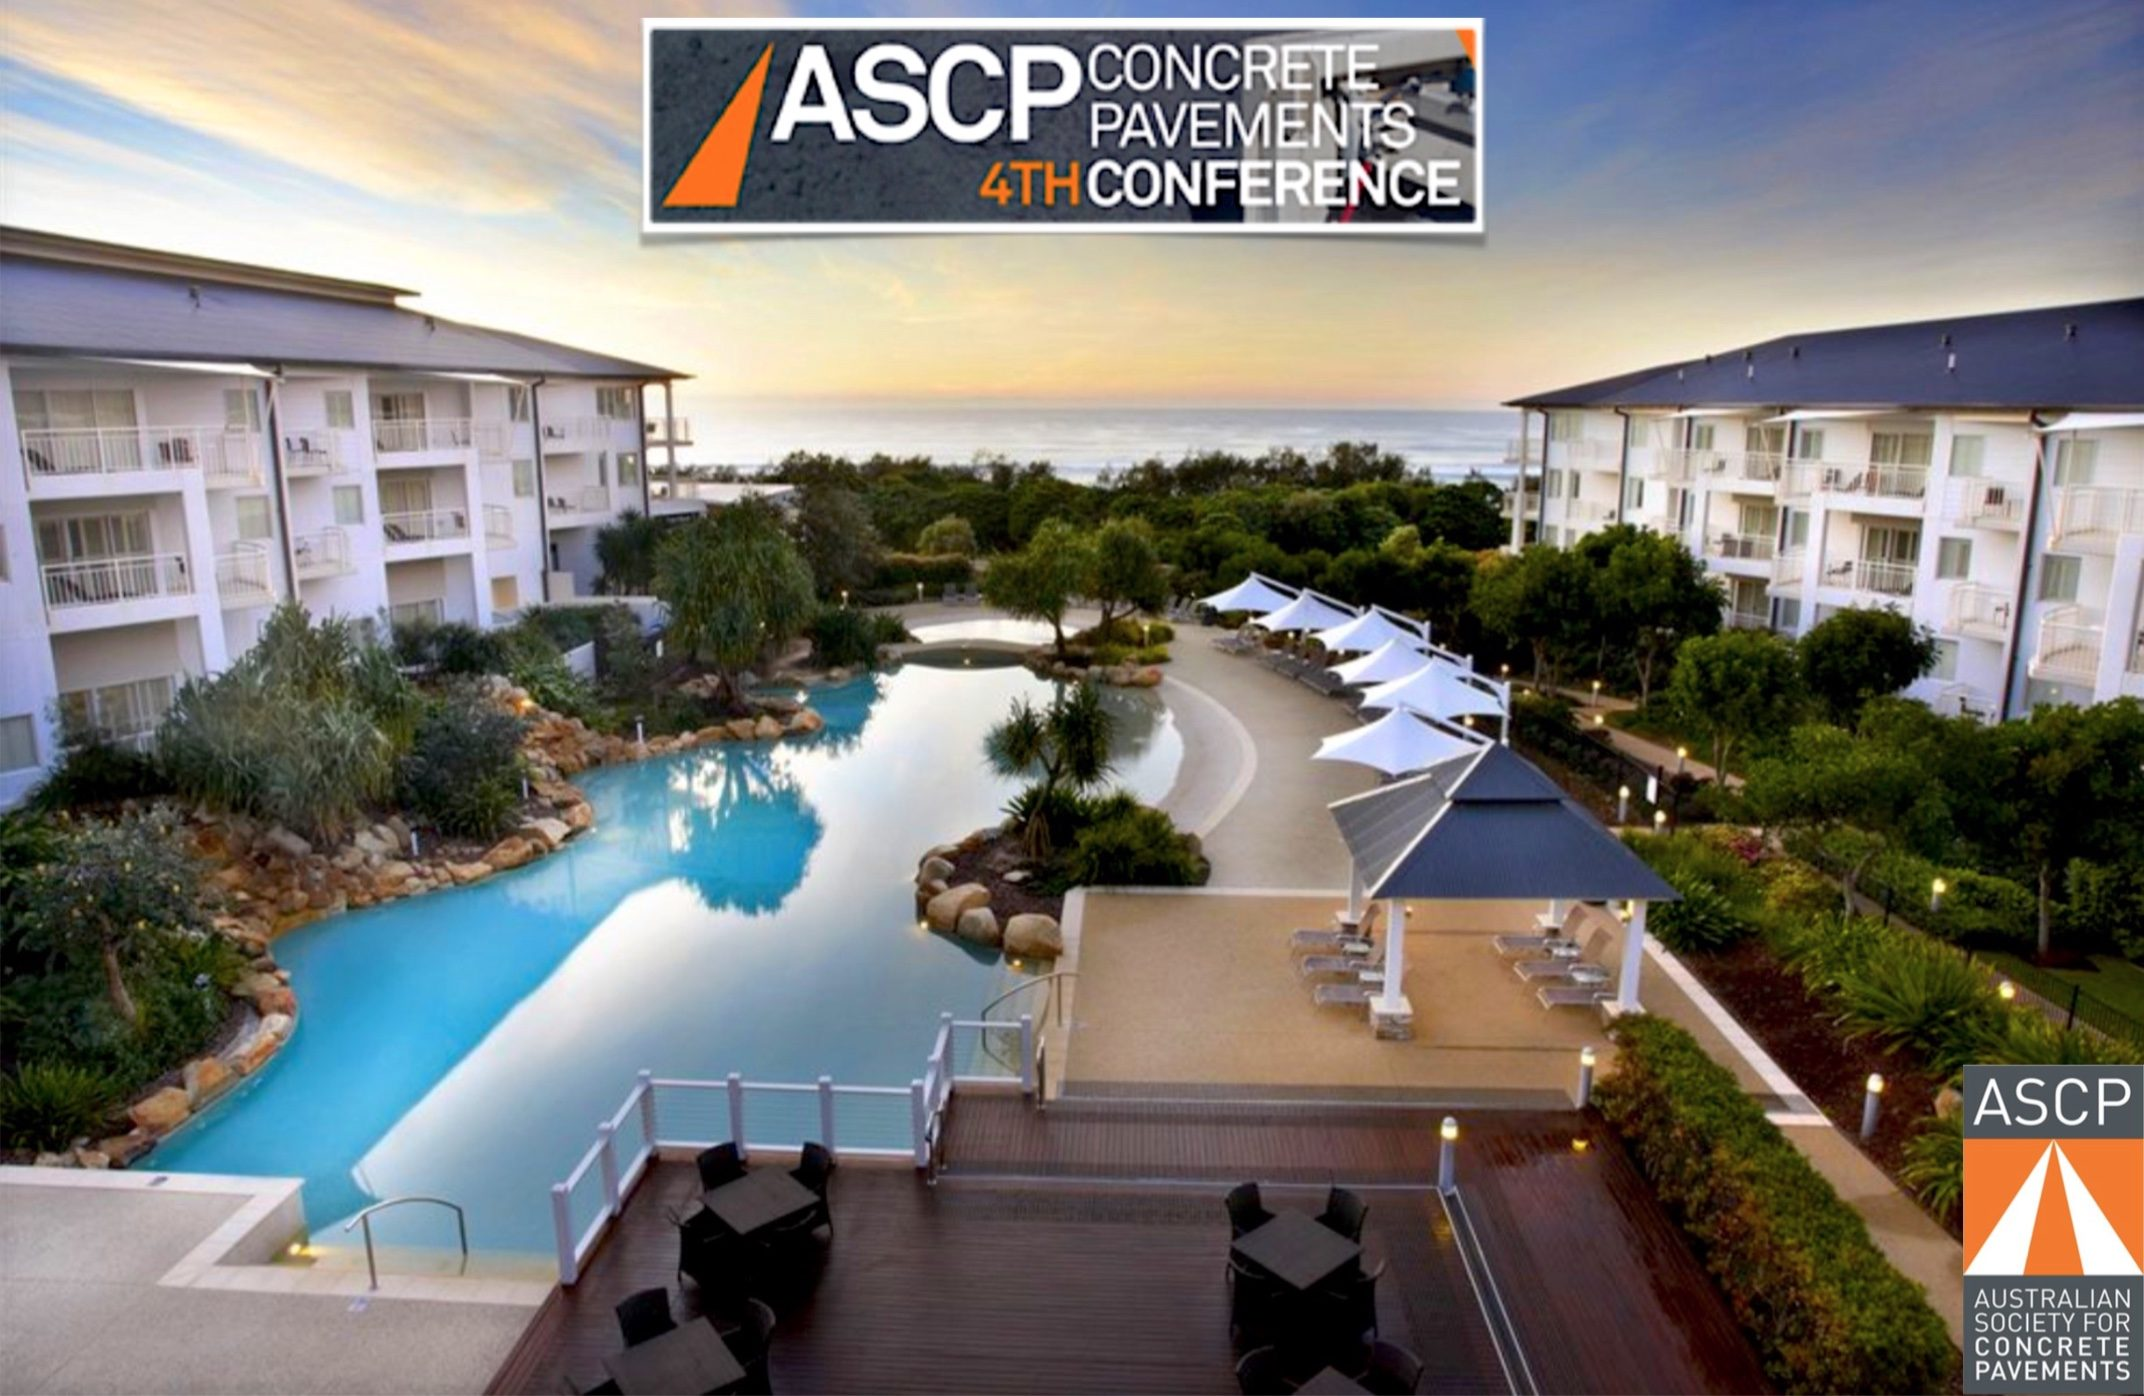 Become an ASCP Member & Save Over $300 on the ASCP 4th Concrete Pavements Conference—In Just Over 2 Weeks!